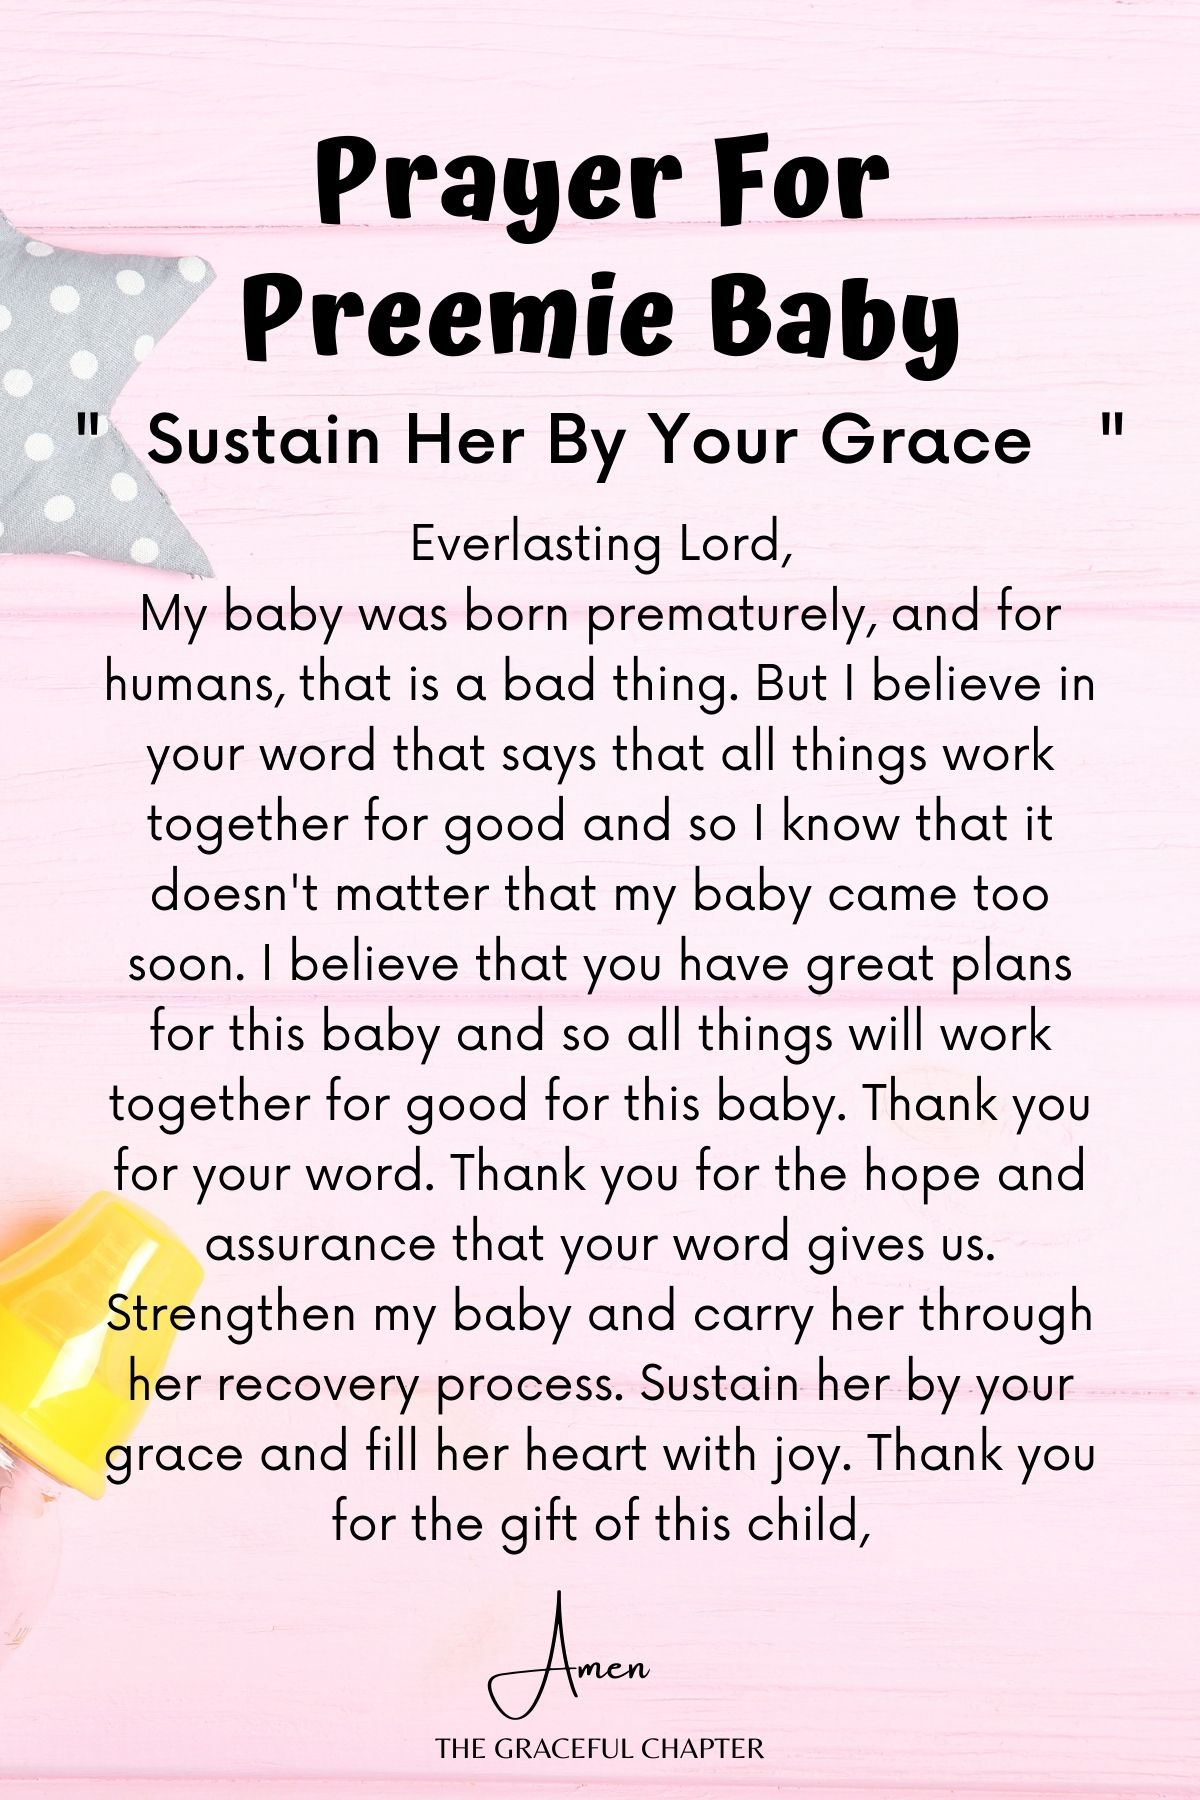 Sustain her by your grace - prayer for preterm baby